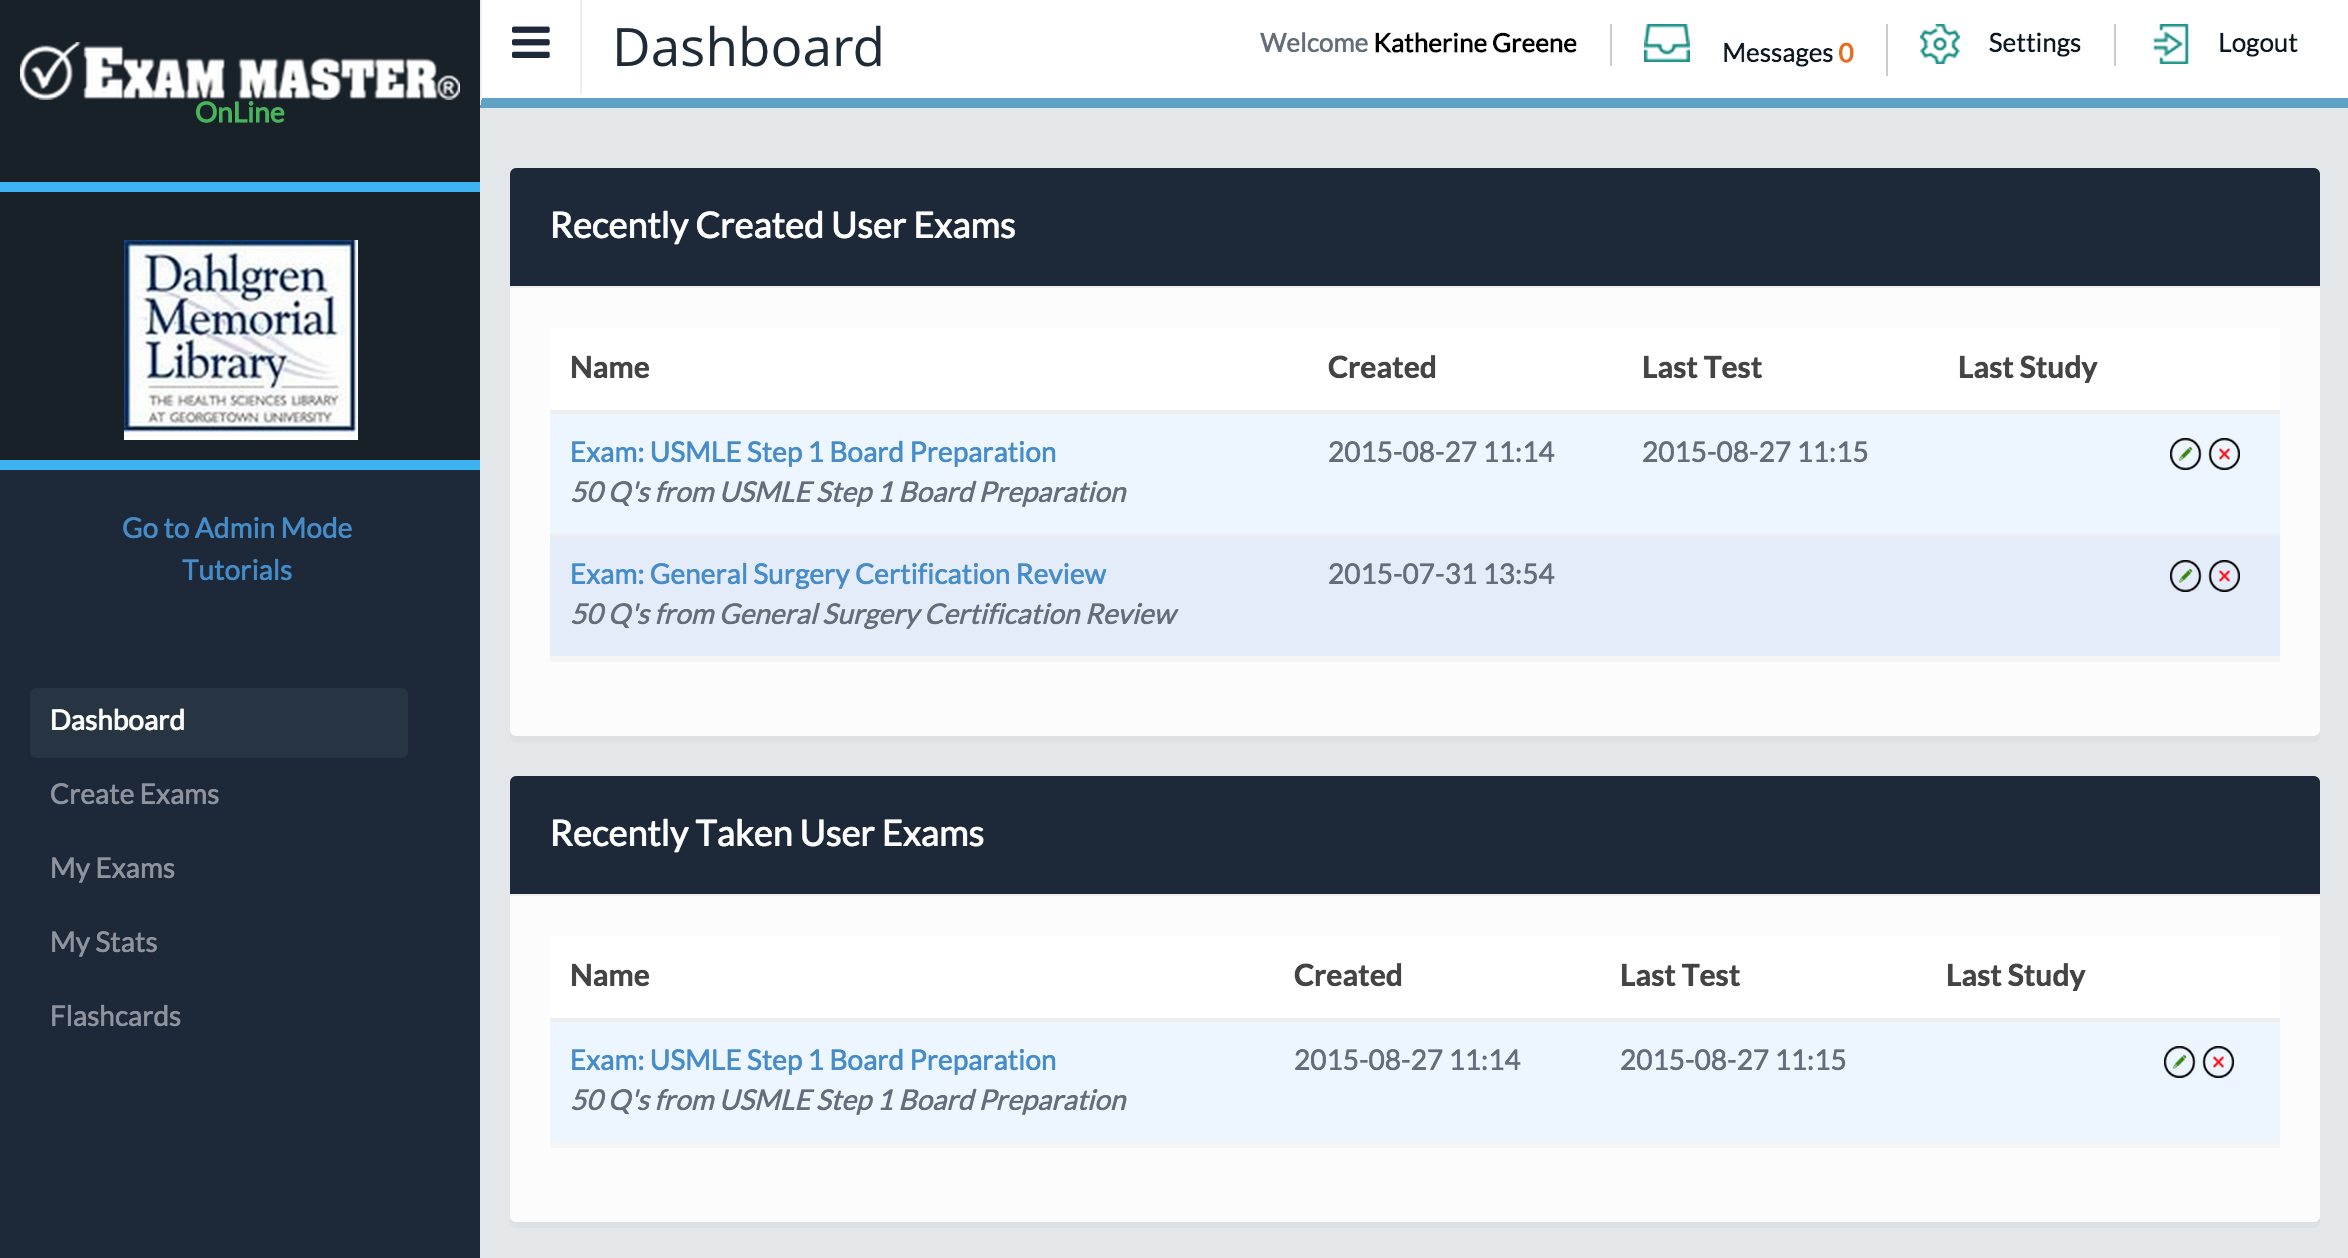 exam master online test preparation guide guides at dahlgren as you work exam master online your dashboard will be populated recently created user exams recently taken user exams and recently scored